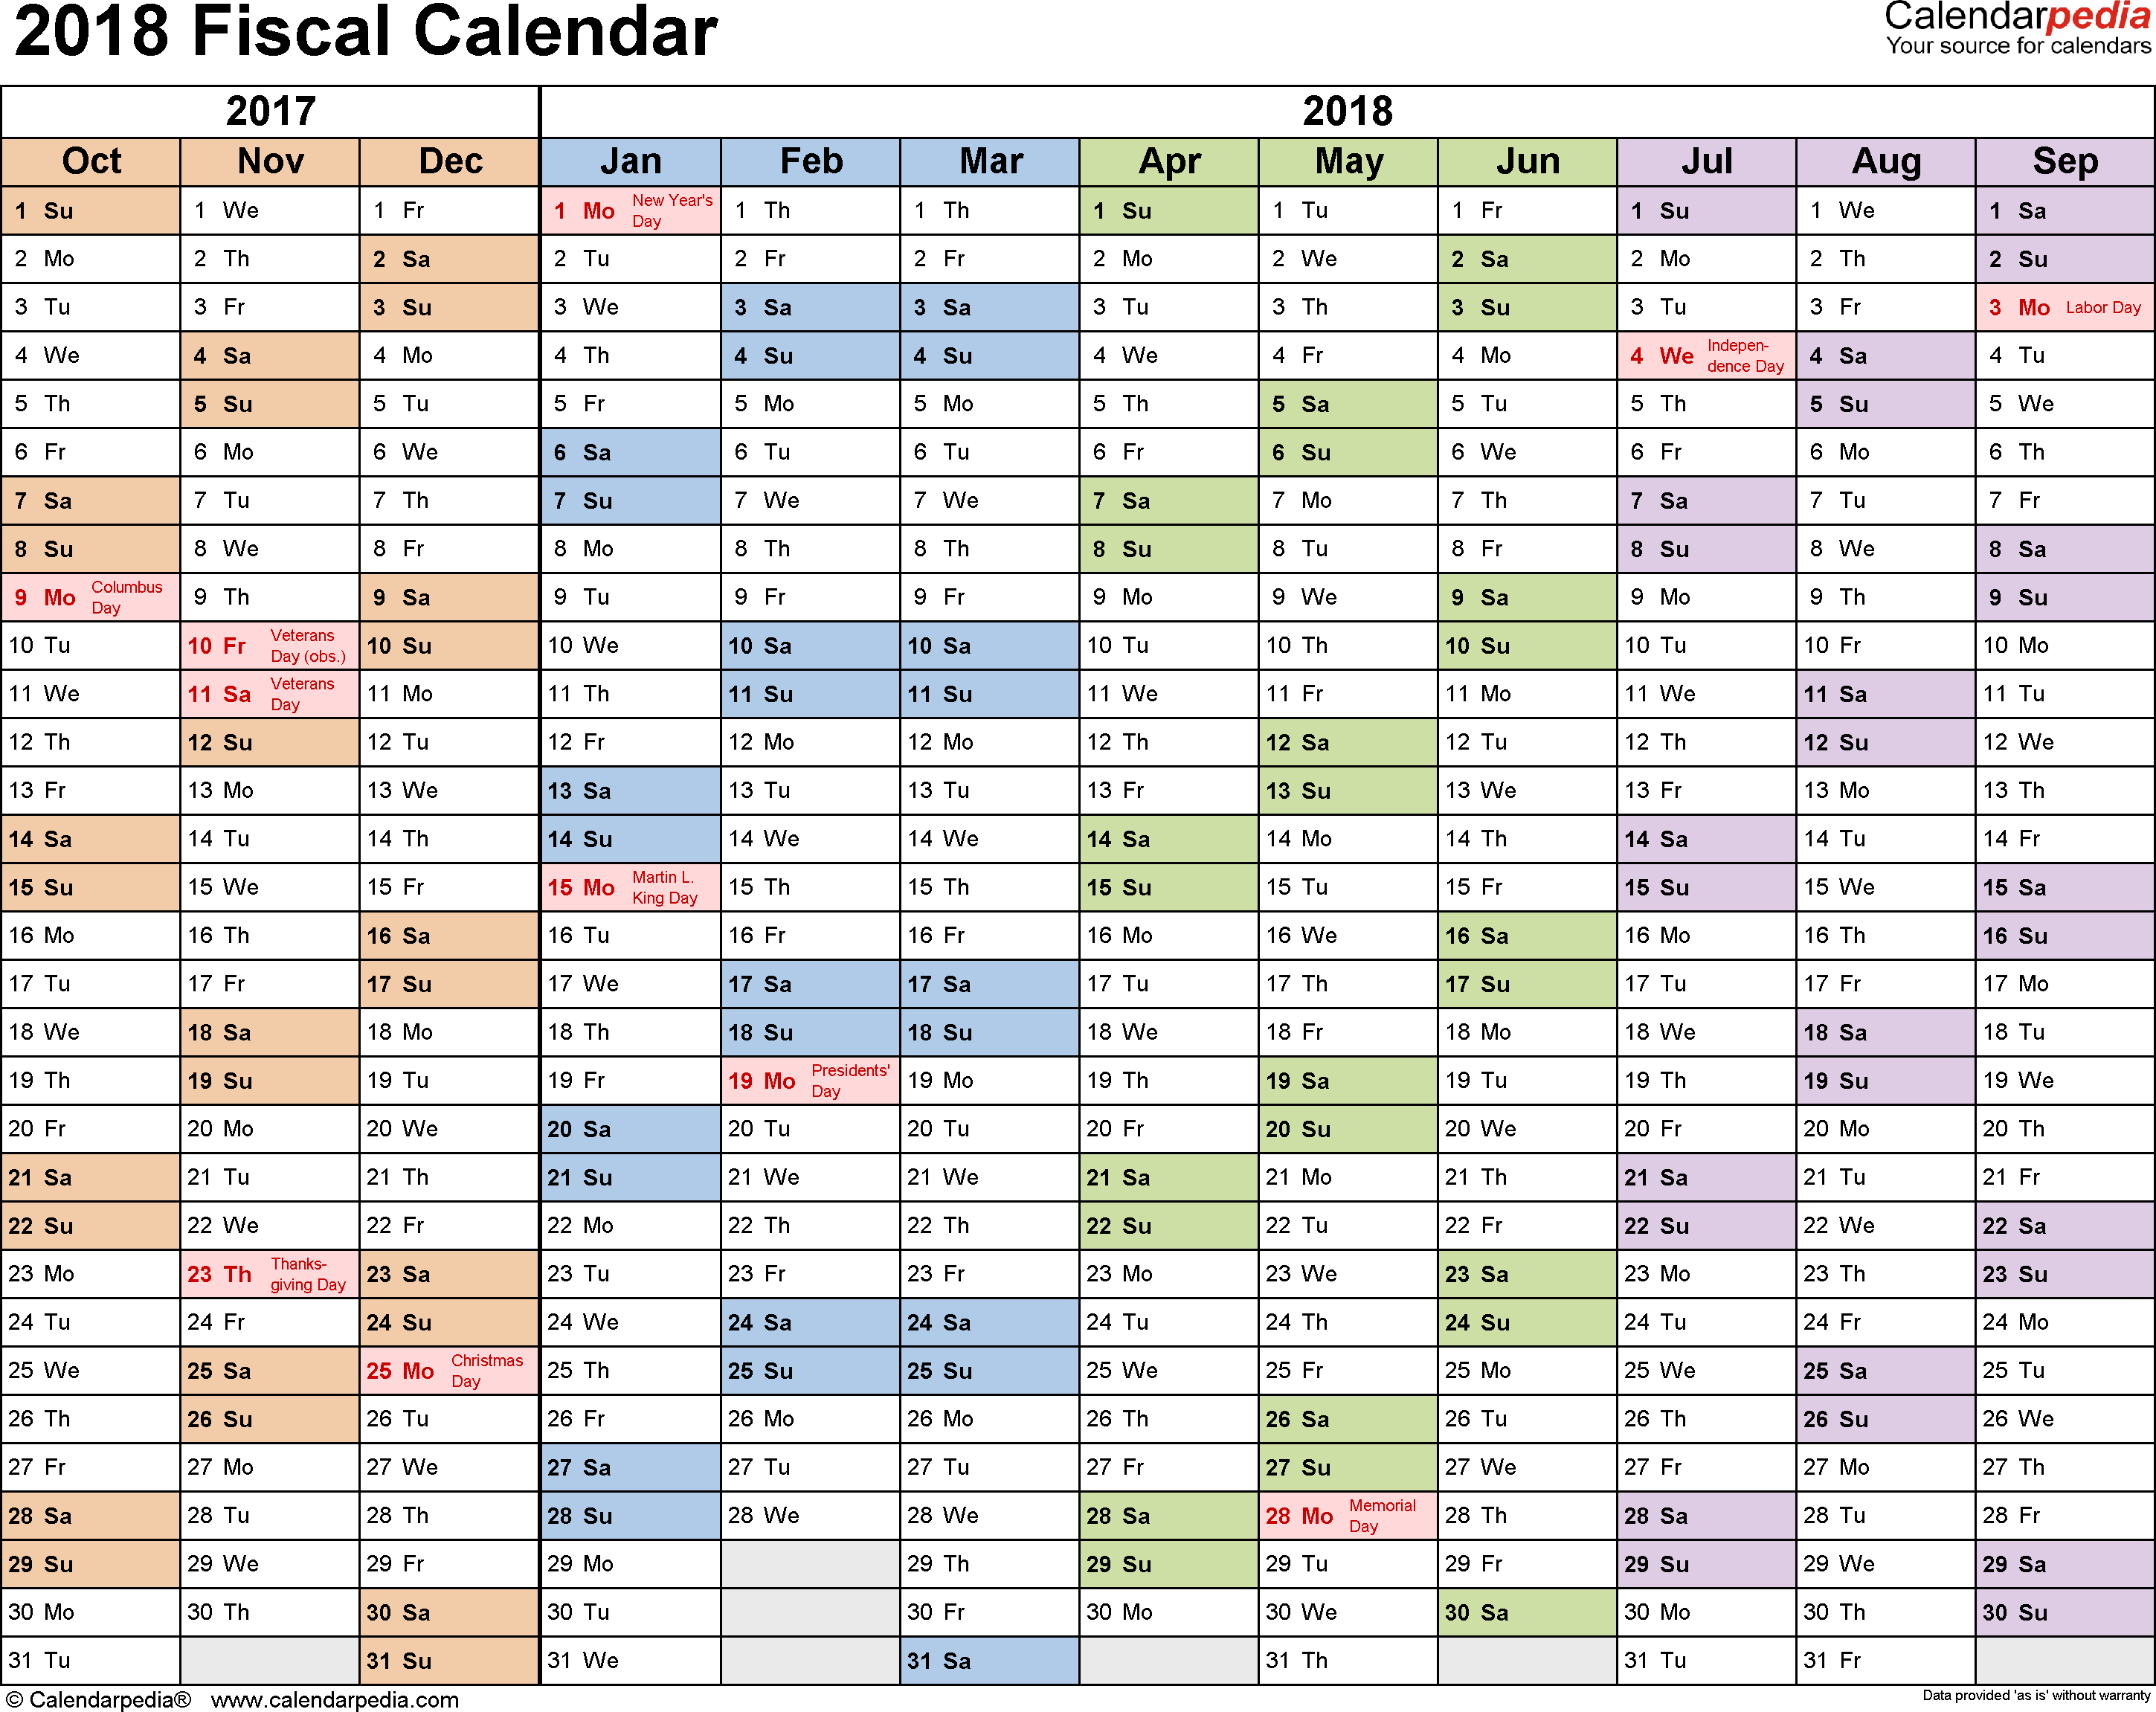 Template 1: Fiscal year calendar 2018 for Word, landscape orientation, months horizontally, 1 page